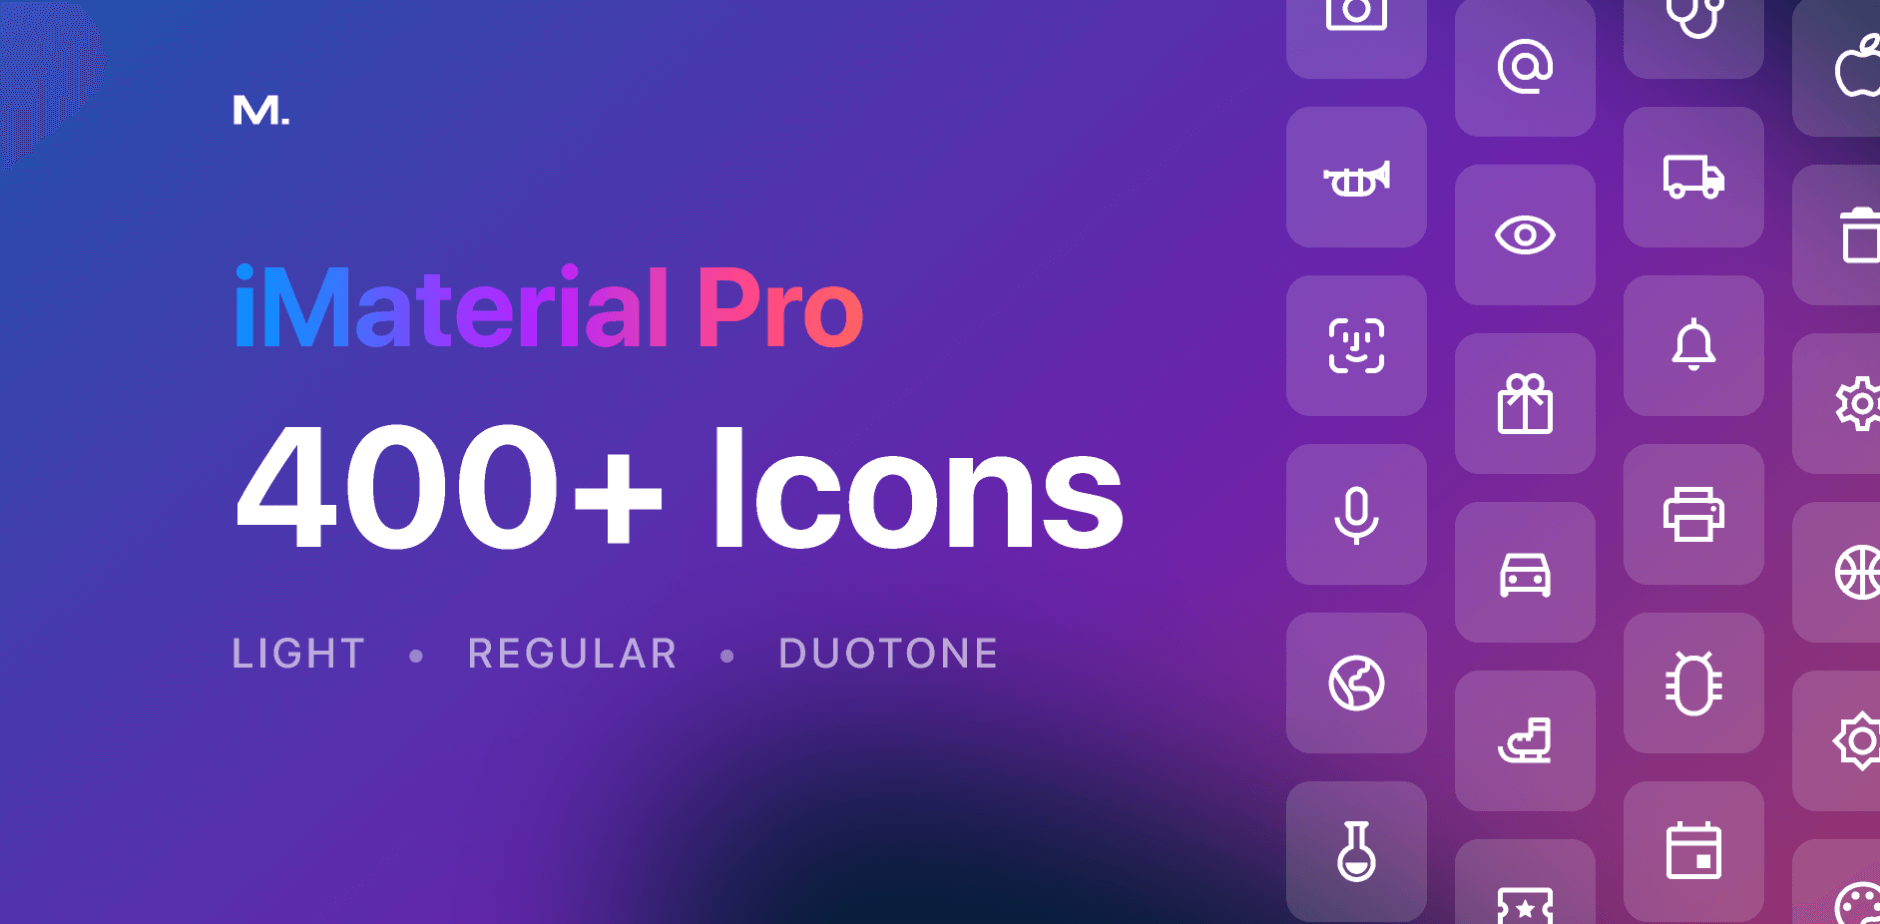 iMaterial Pro Icons pack